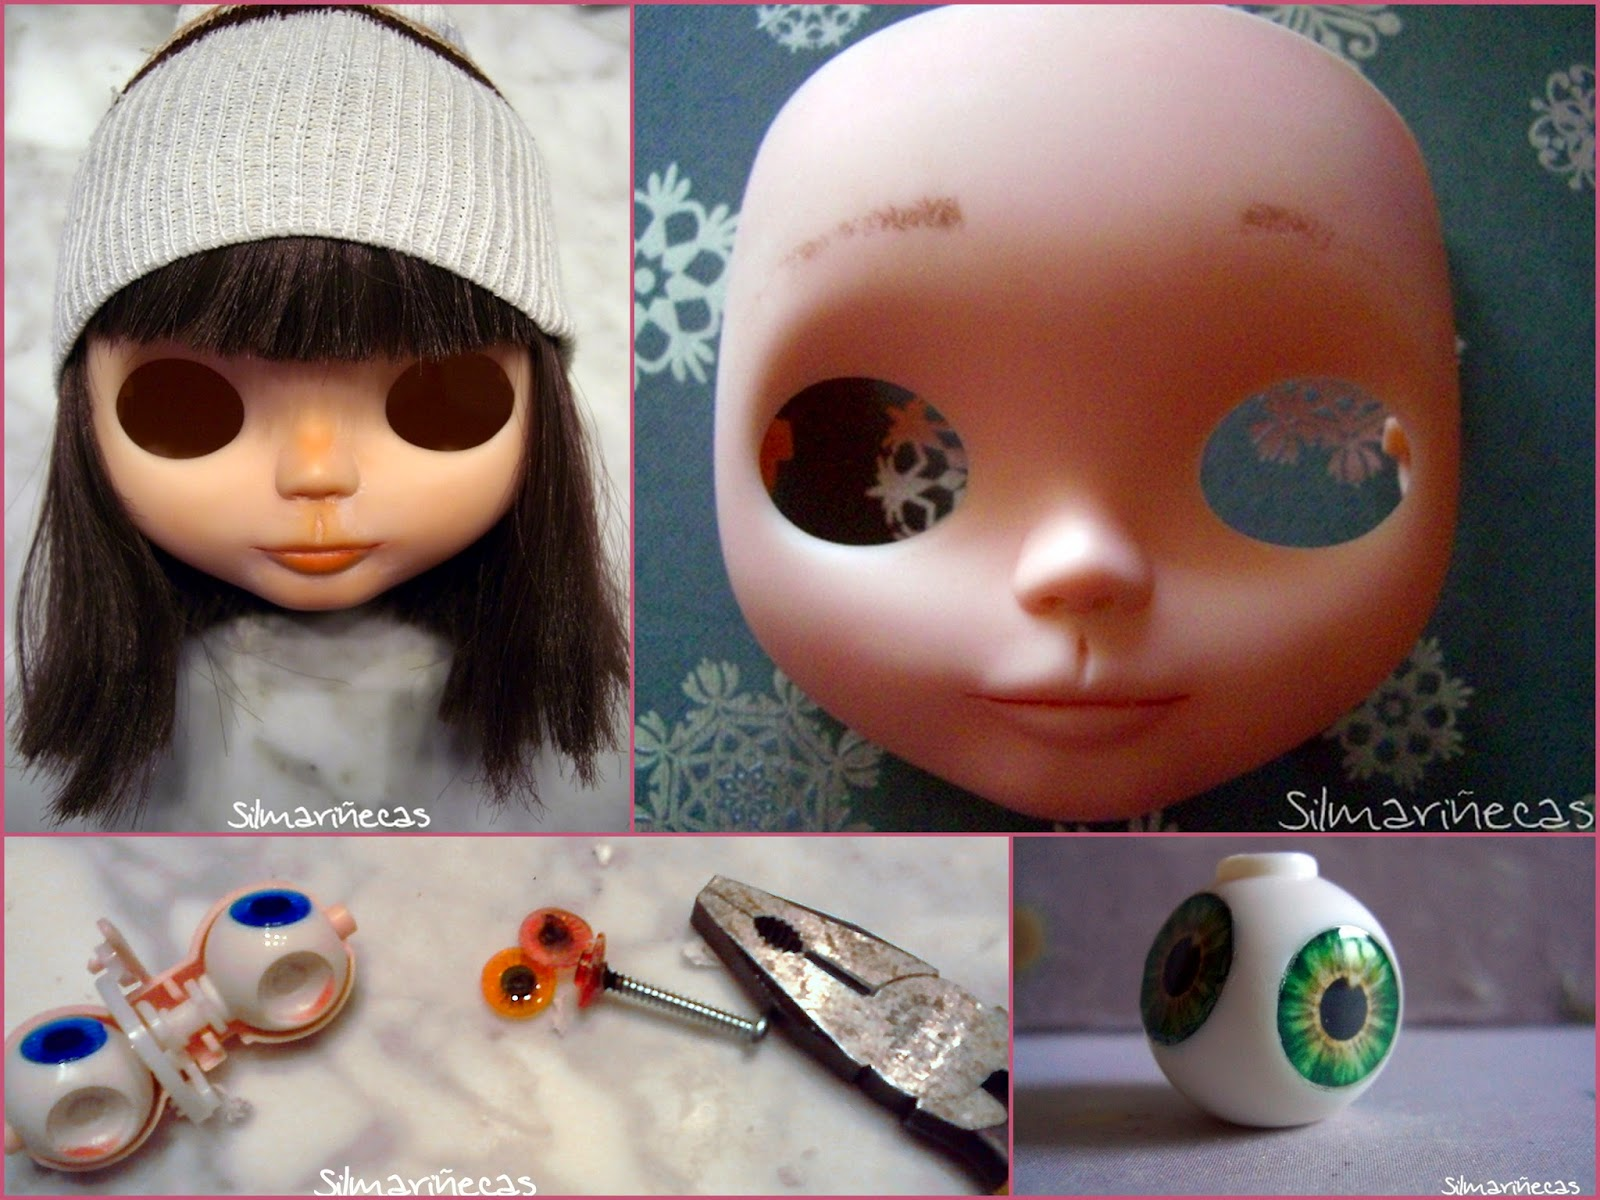 quitar los chips a Basaak doll - blythe